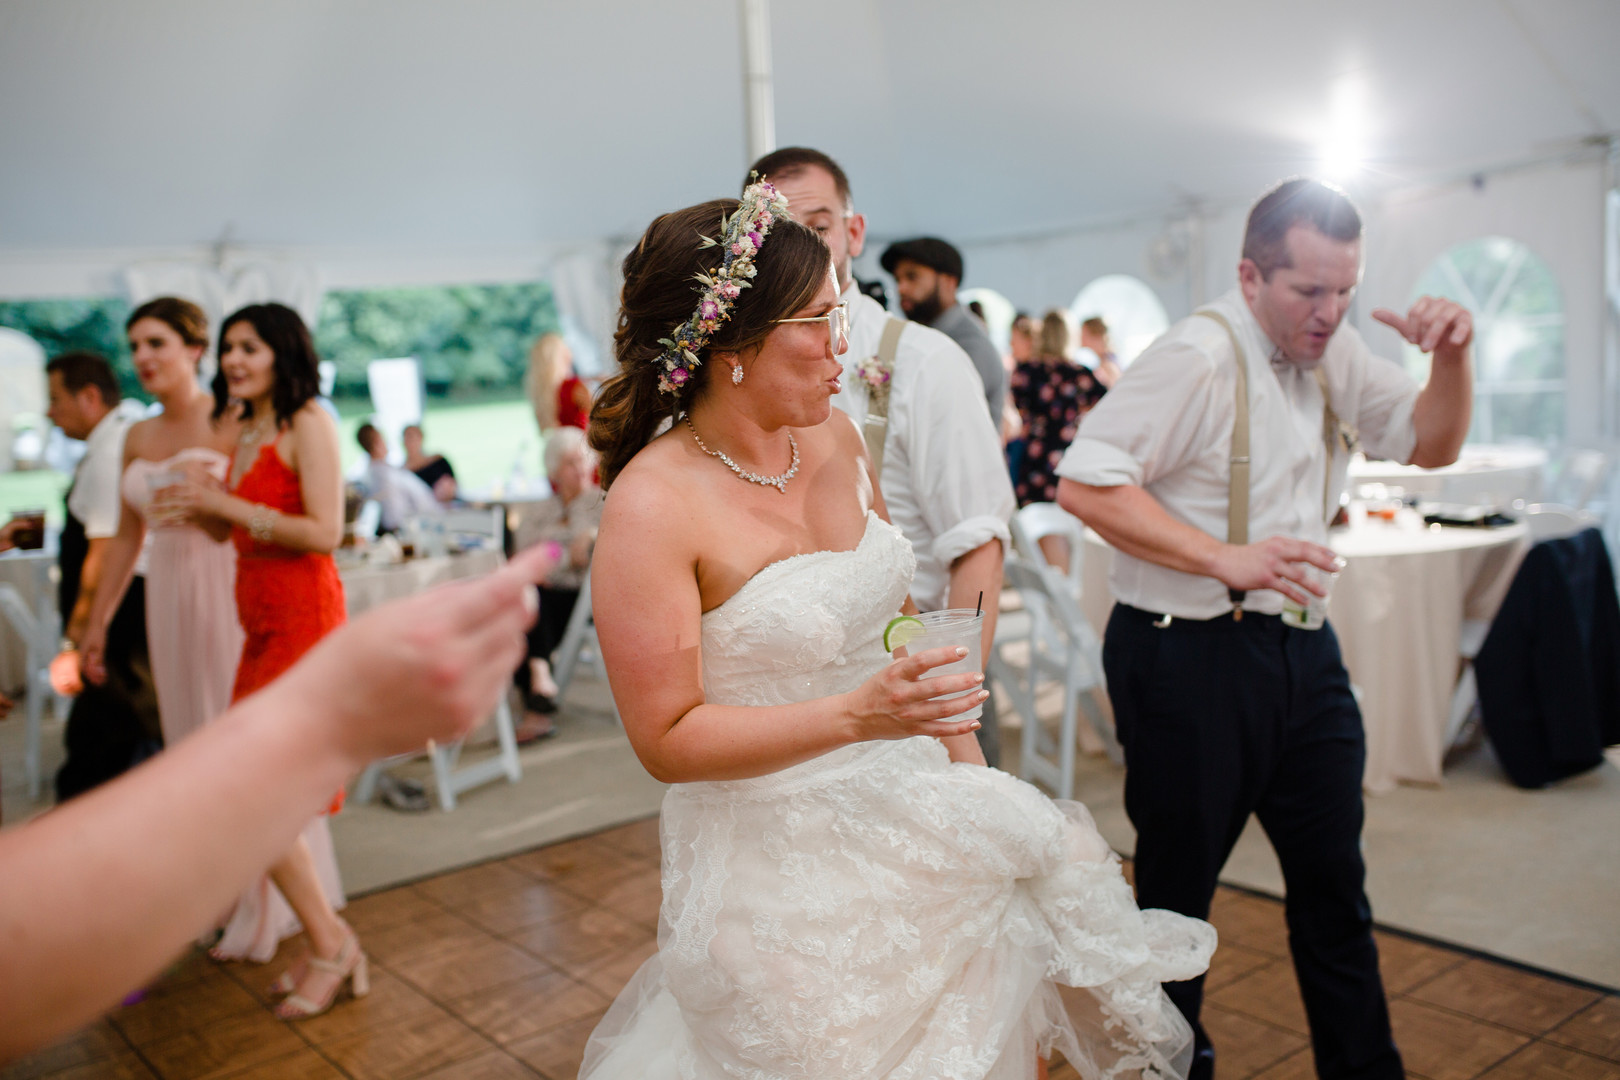 Bride dancing: Rustic country wedding in Minooka, IL captured by Katie Brsan Photography. Visit CHItheeWED.com for more wedding inspiration!